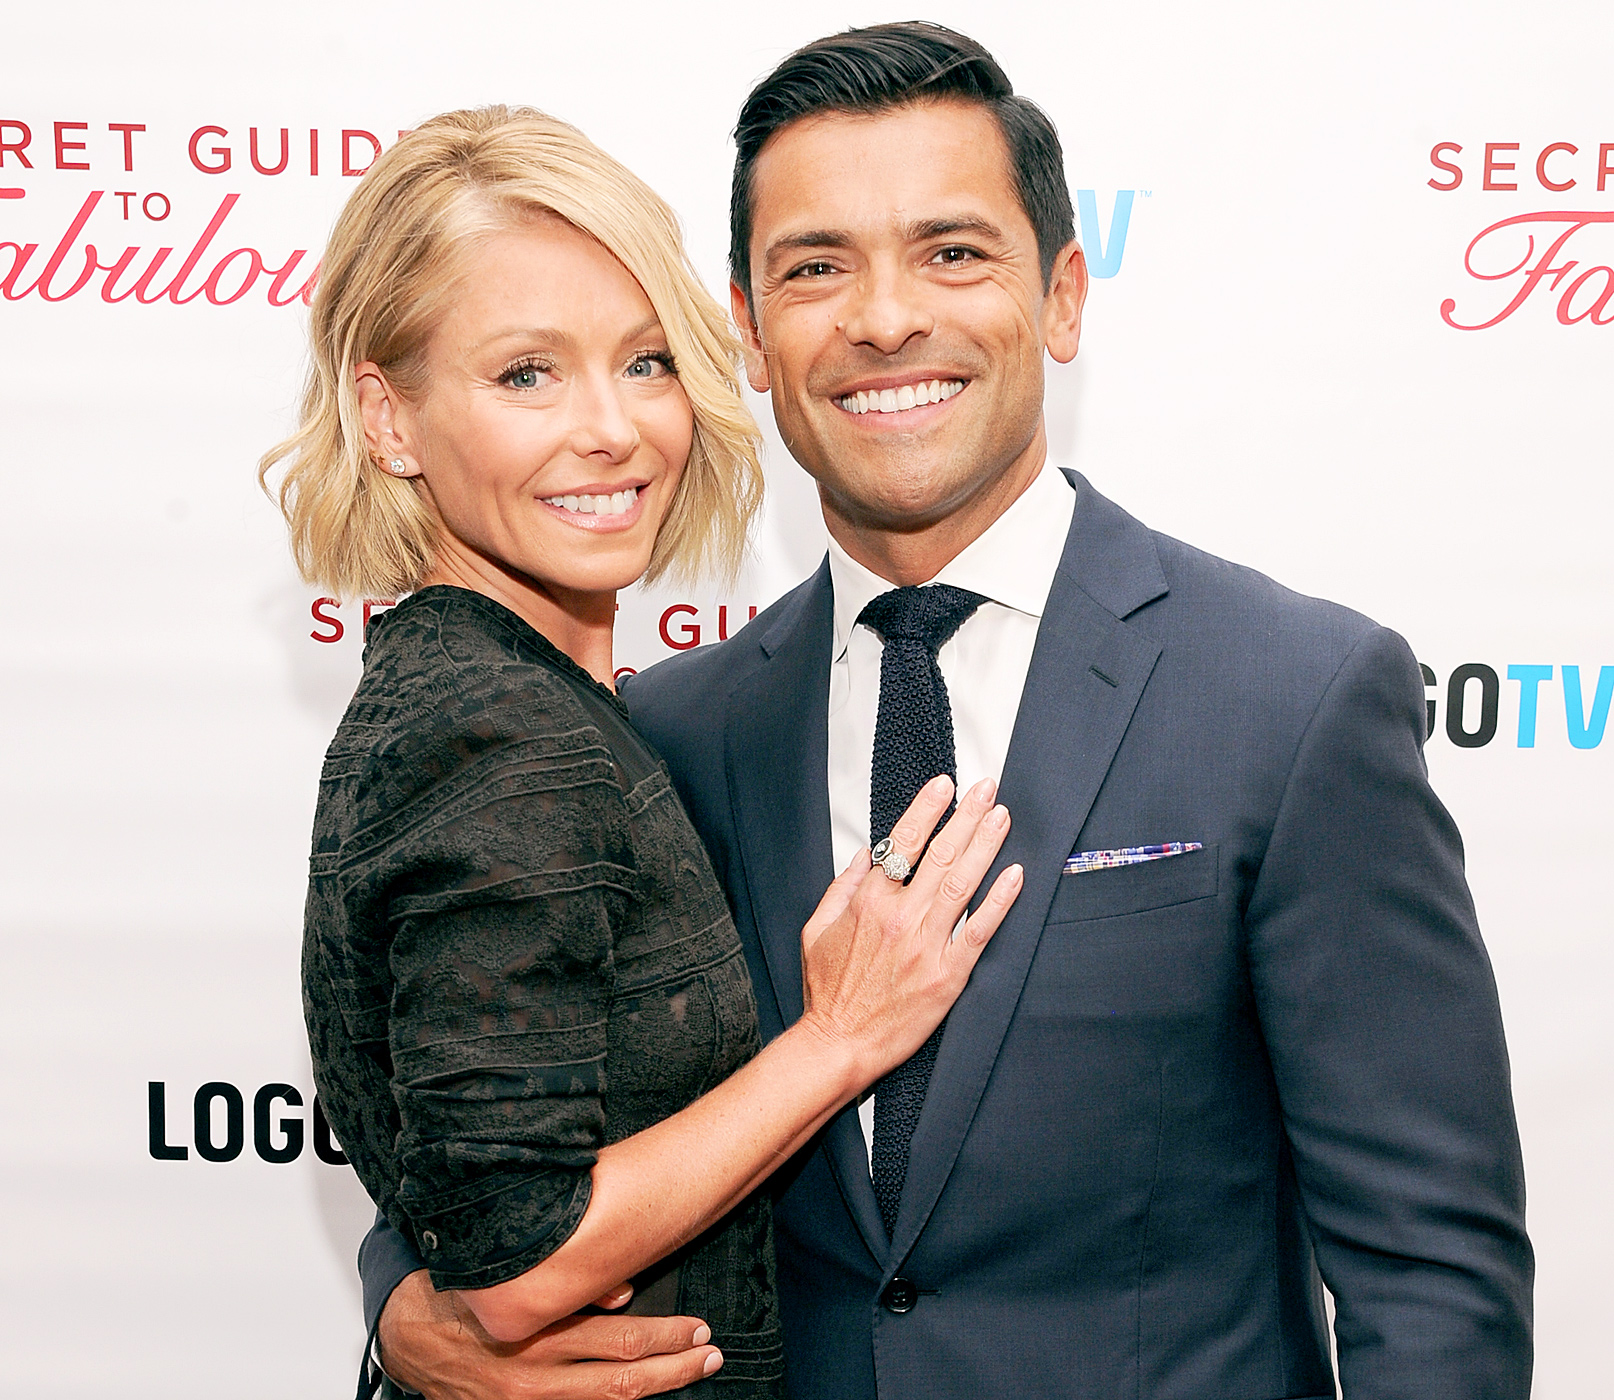 kelly ripa dating history The not-so-simple history of why we call dollars 'bucks' halala people africa tech  kelly ripa body-shamed for wearing a bikini  11 wtf things black women have heard when dating white people 5 things you need to know about the mighty zion christian church.